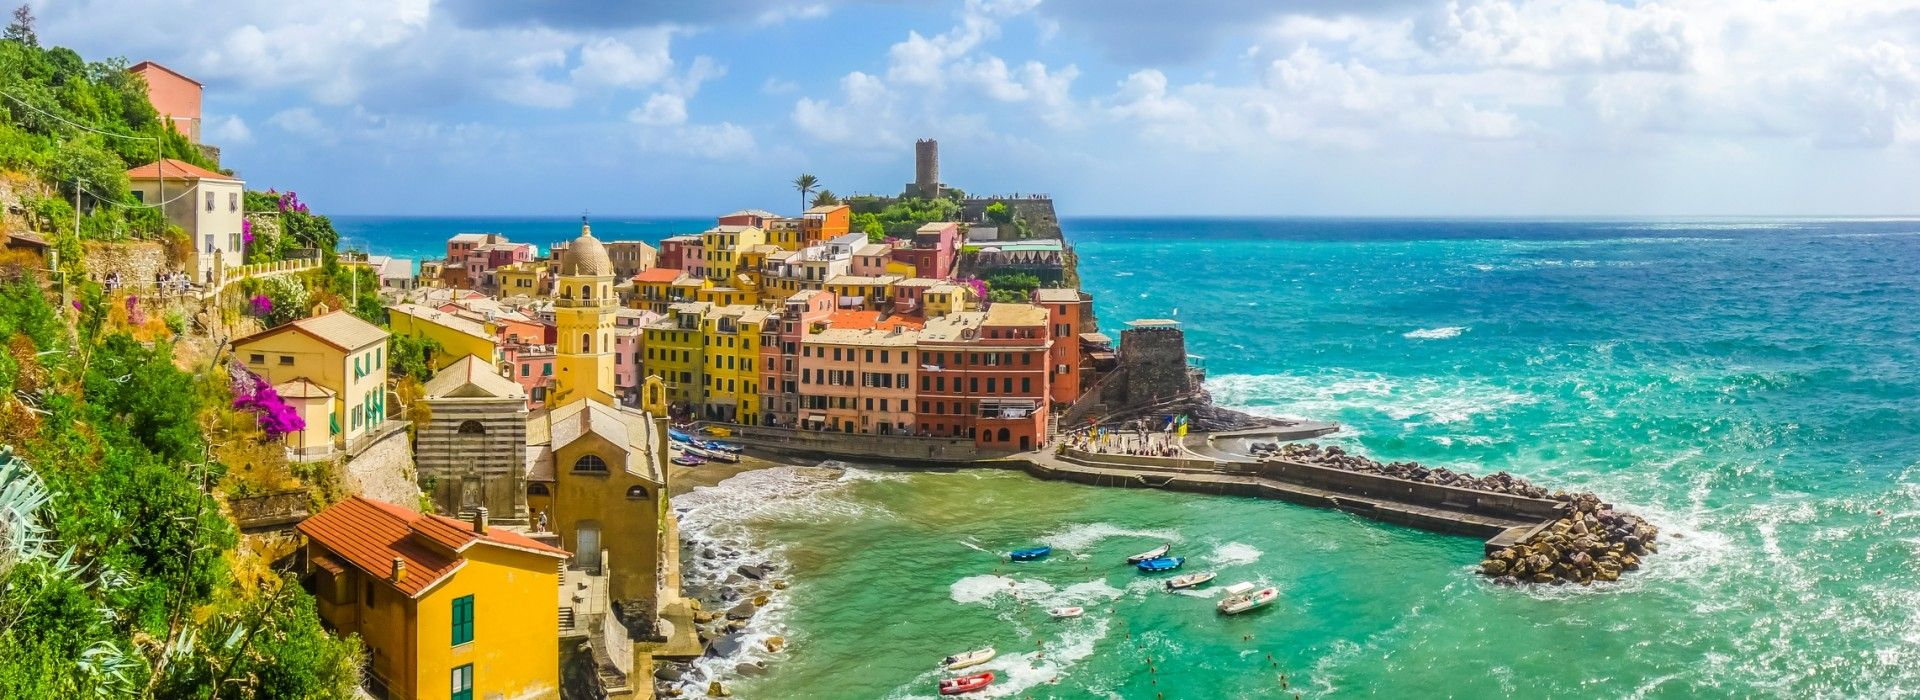 Cultural, religious and historic sites Tours in Italy